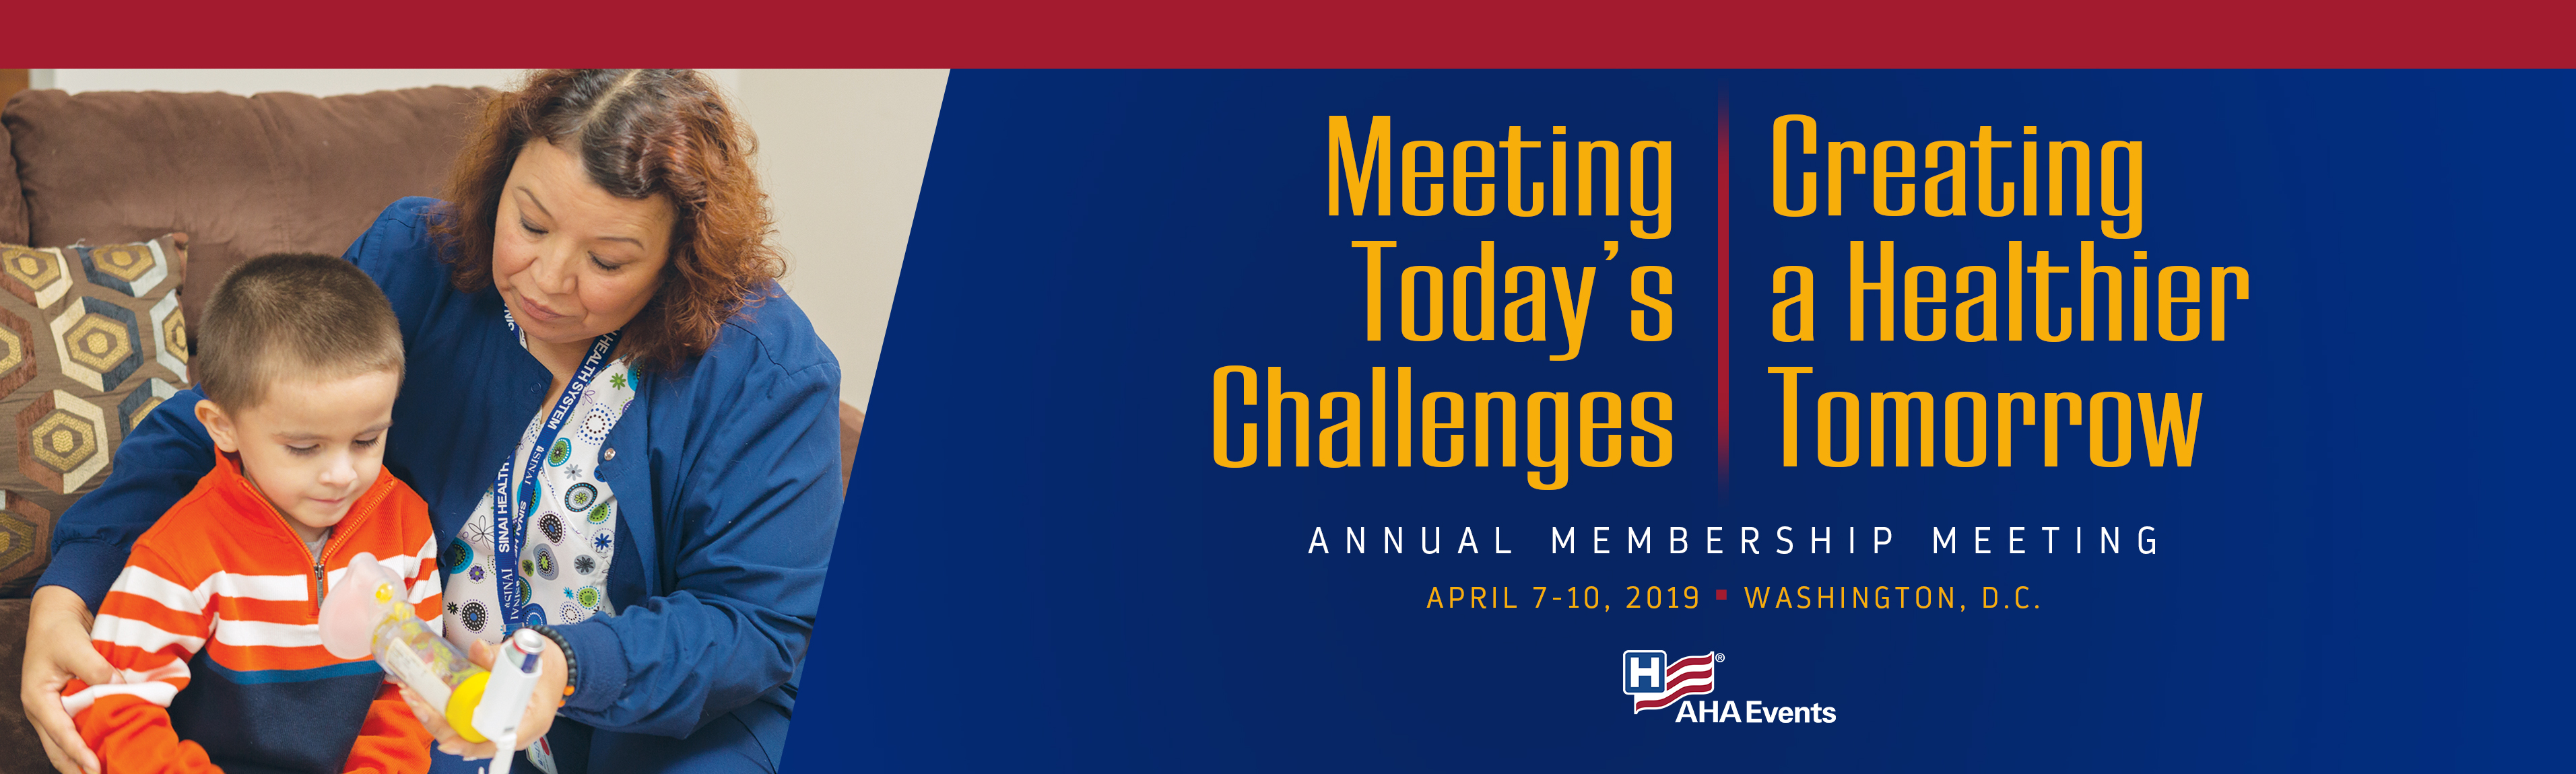 AHA-Annual-Membership-Meeting-2019-web-banner